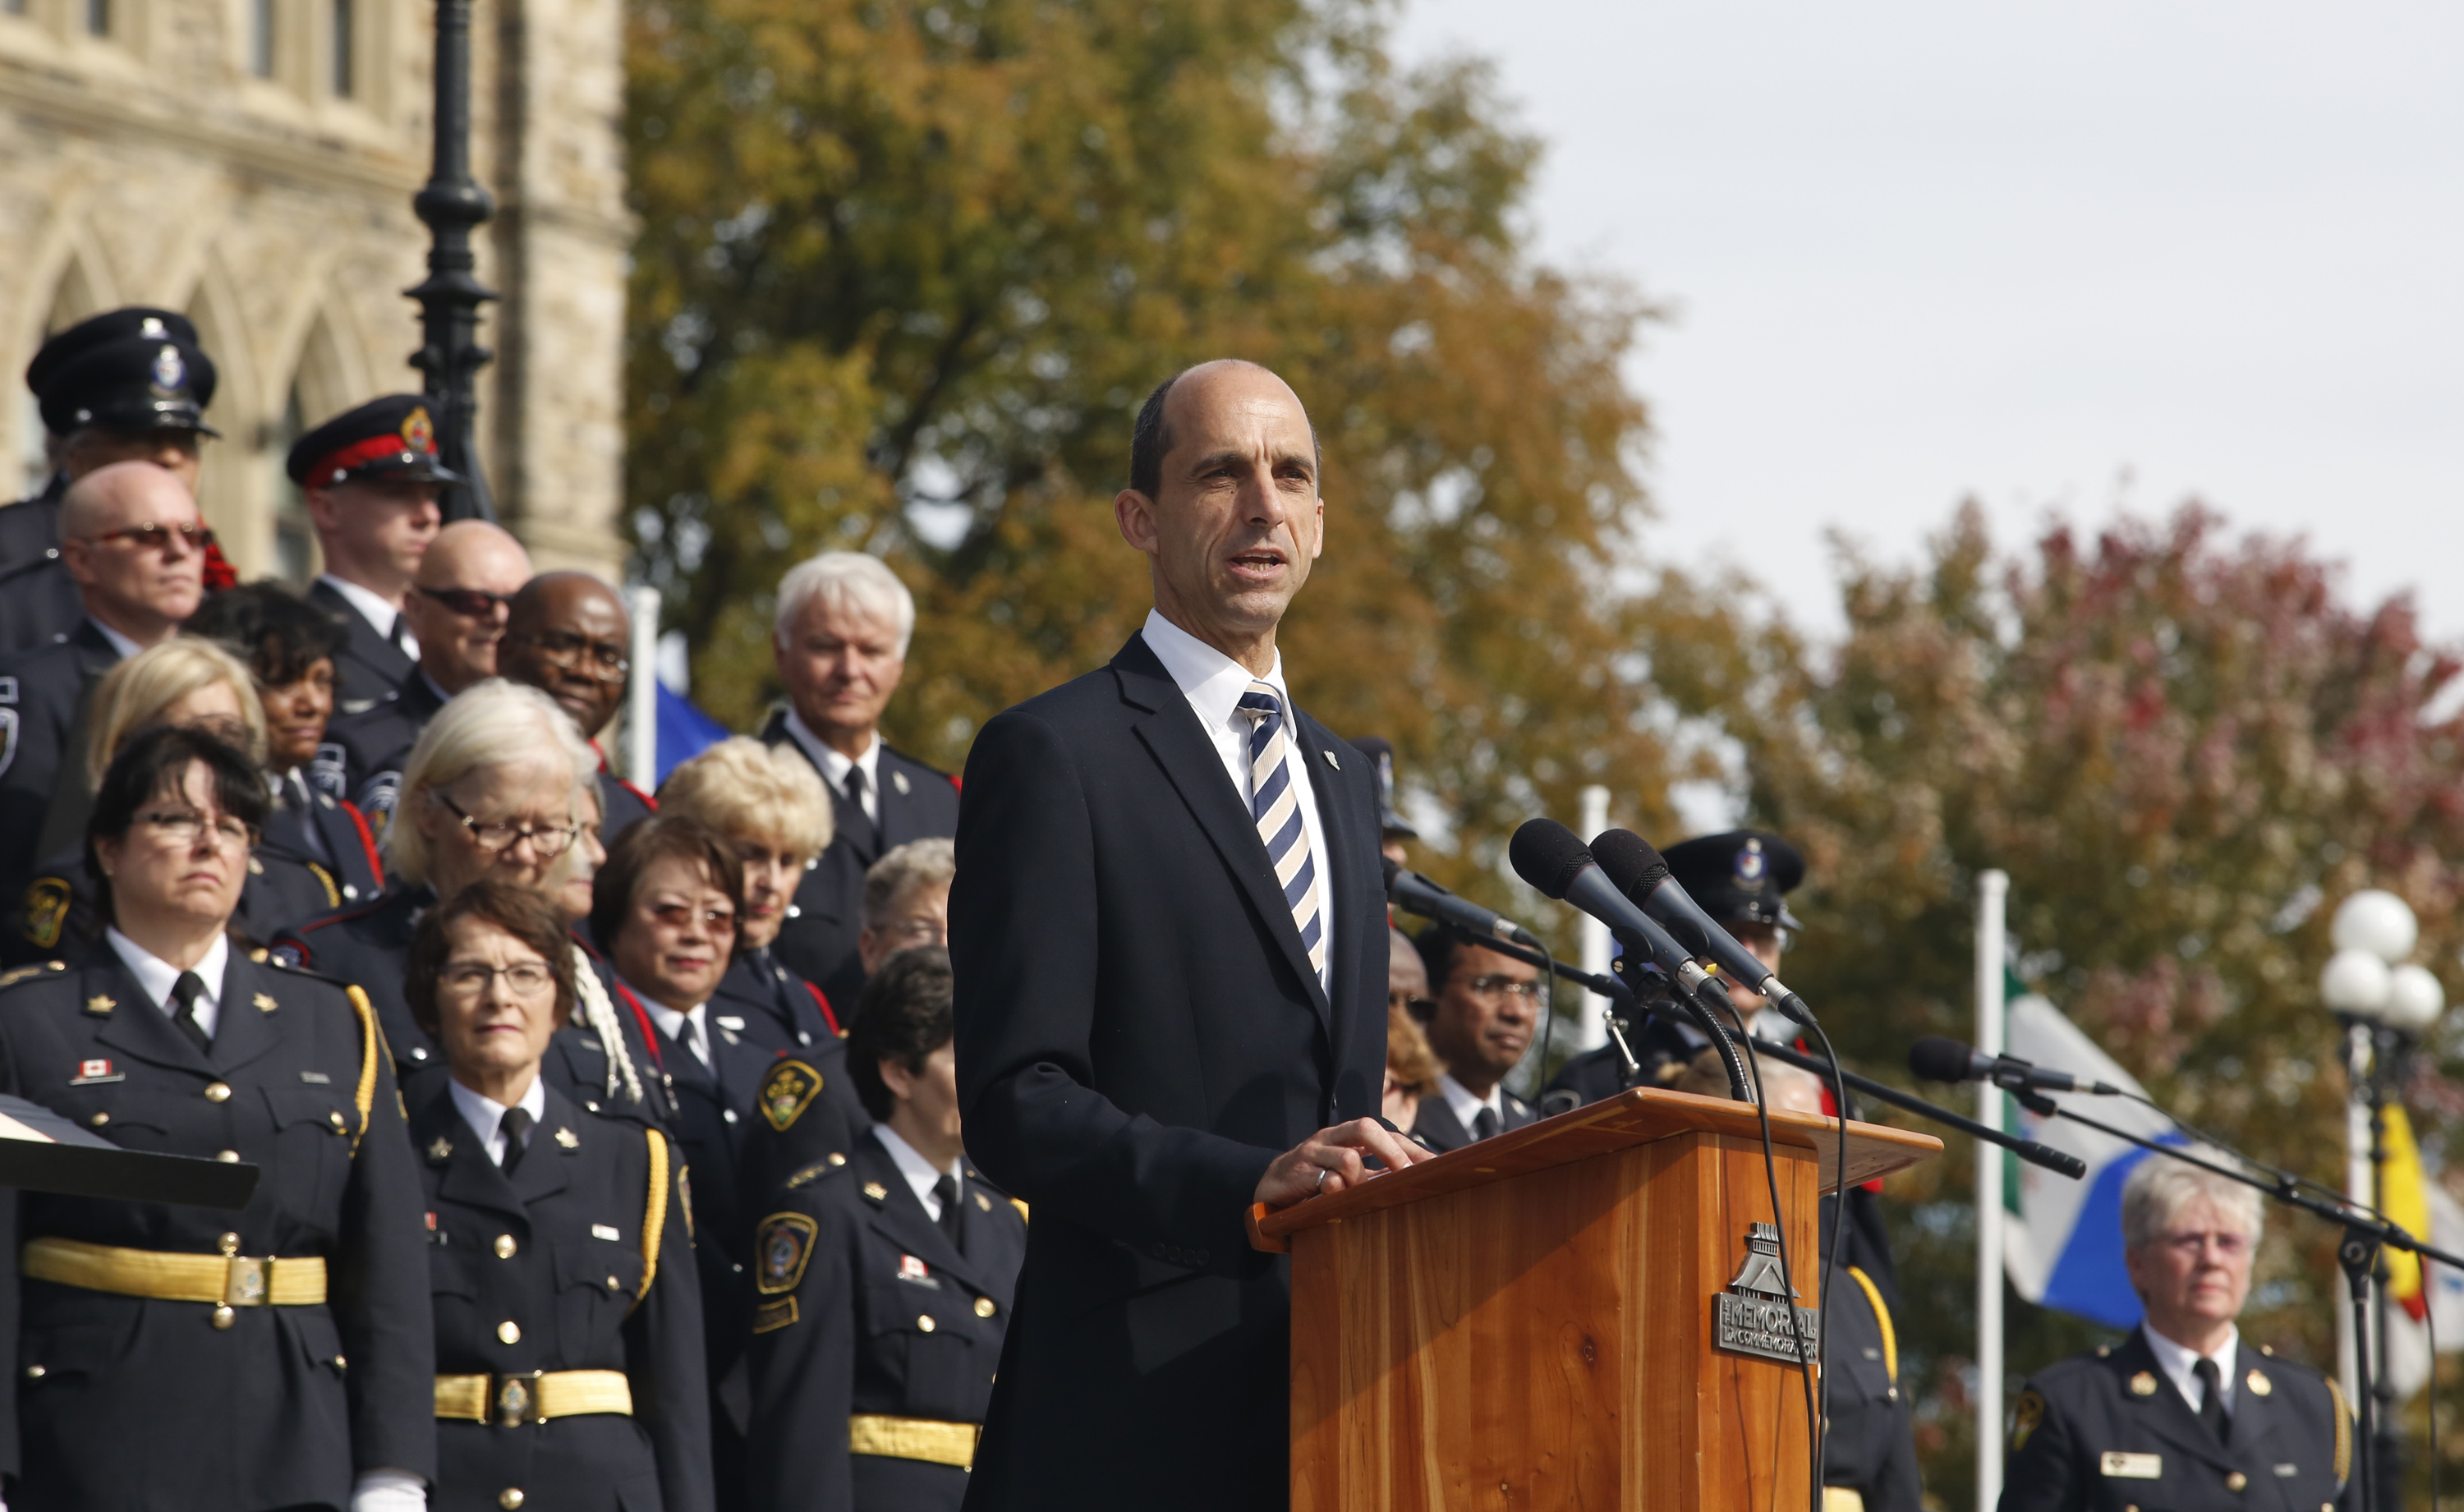 The Honourable Steven Blaney, Minister of Public Safety and Emergency Preparedness, issued the following statement today to mark the Canadian Police and Peace Officers' 37th Annual Memorial Service.